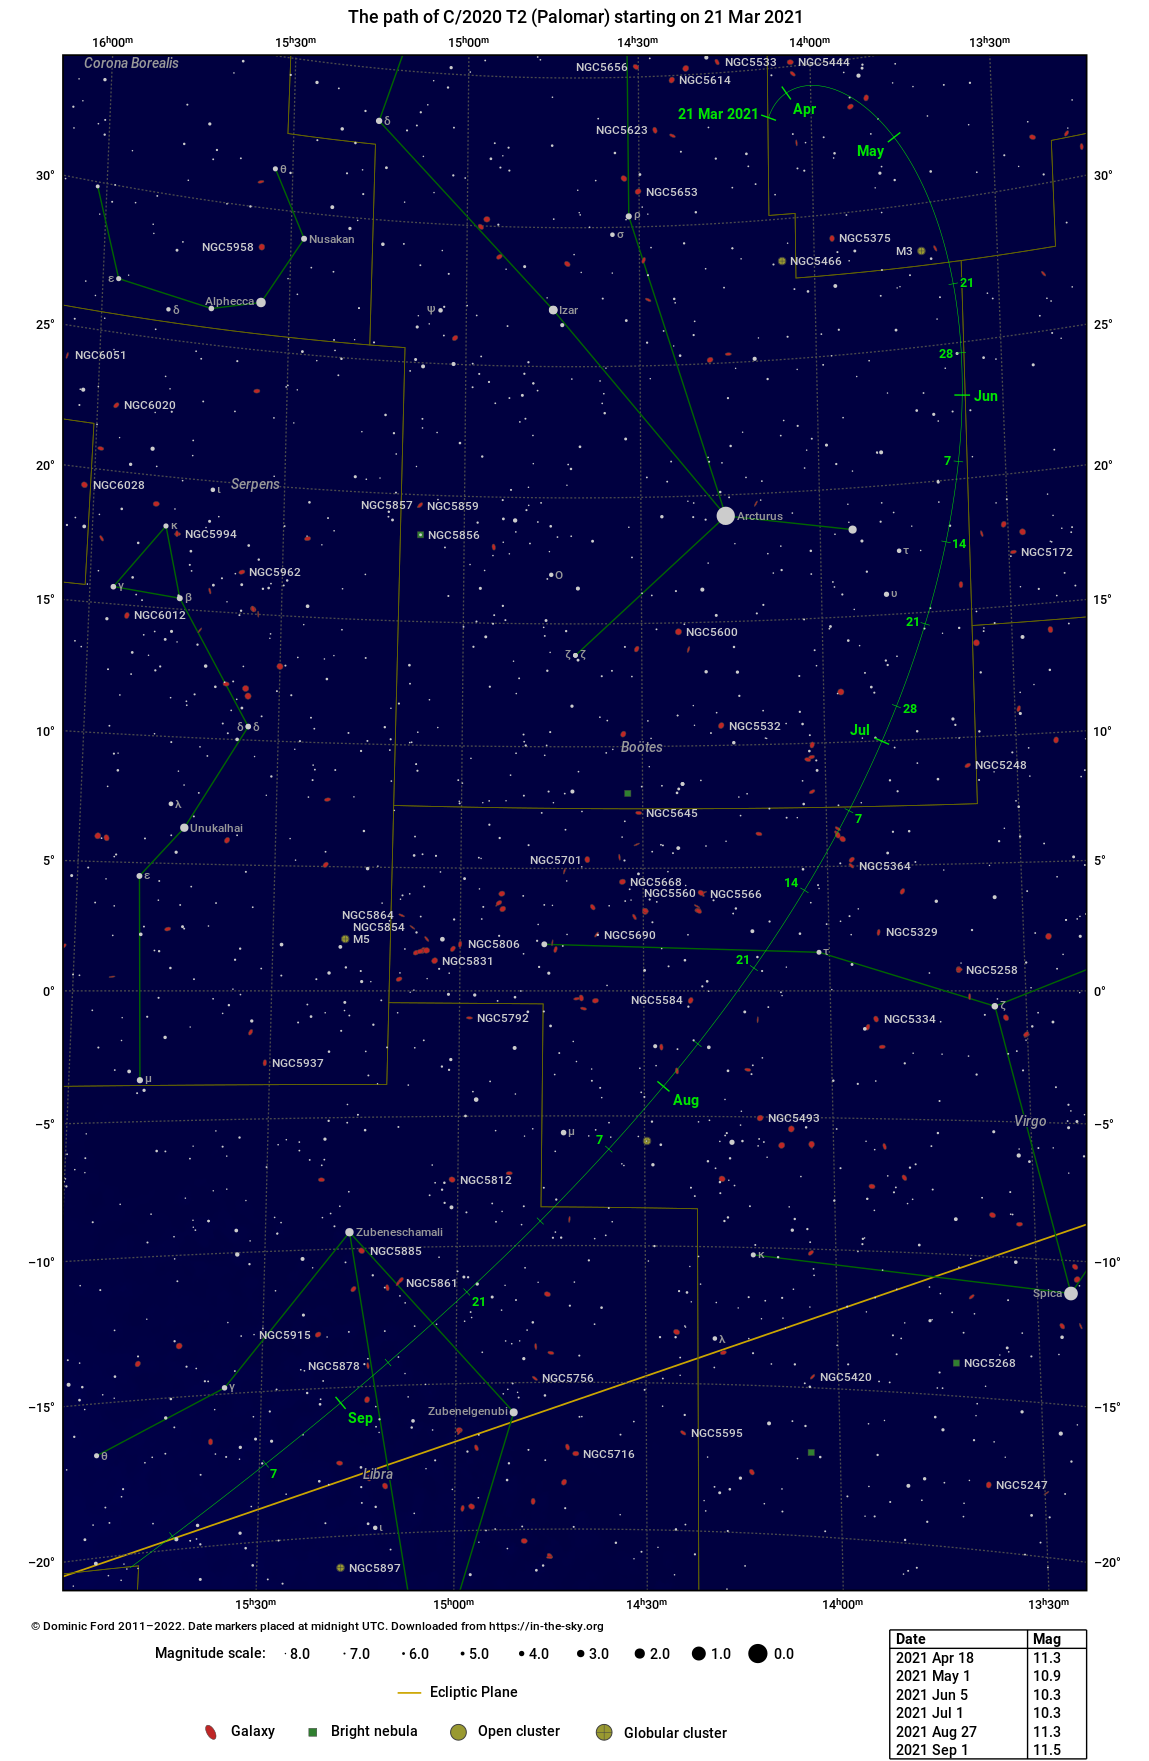 The path traced across the sky by C/2020 T2 (Palomar)